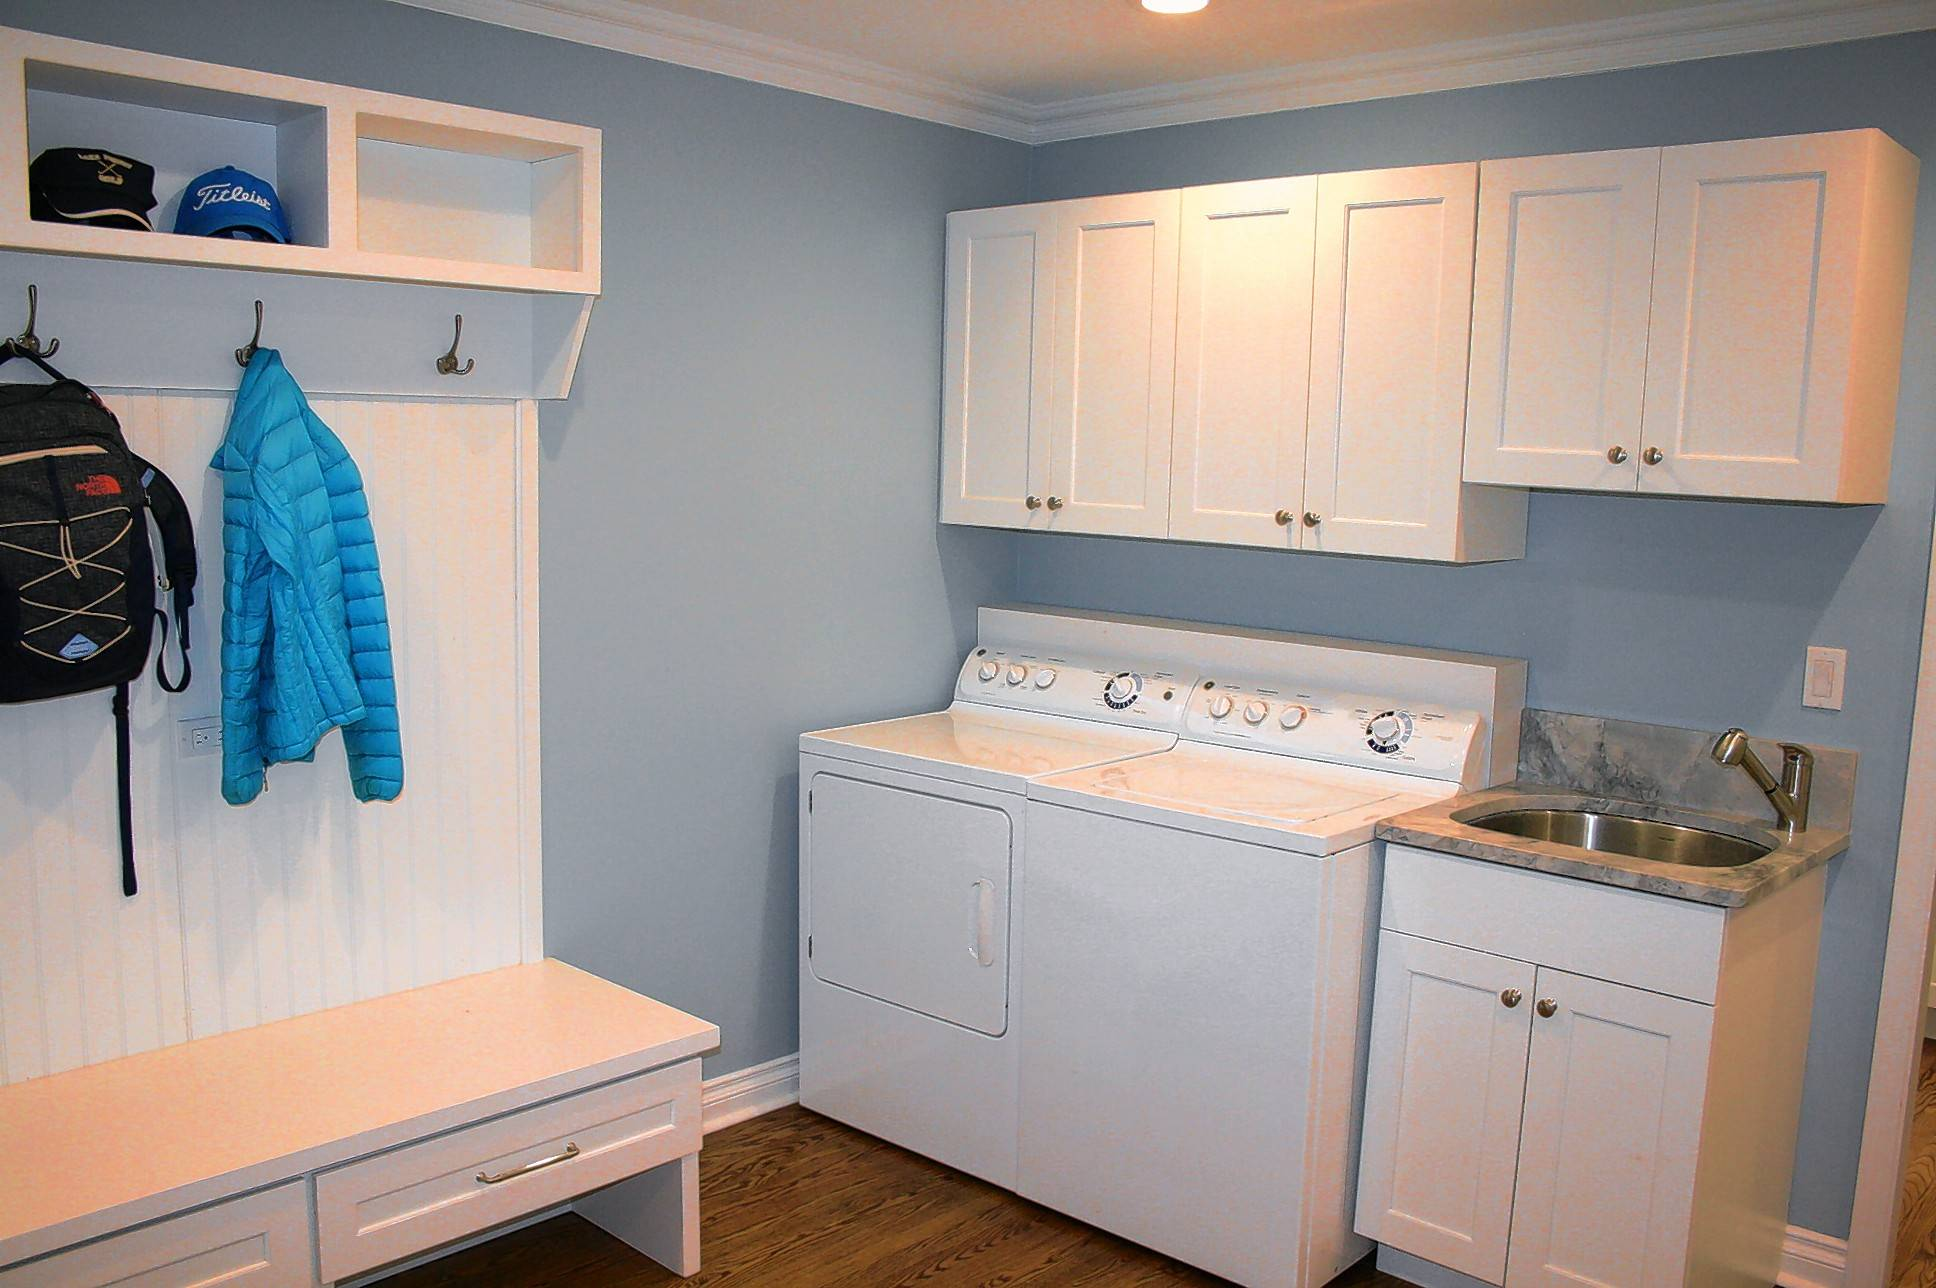 Kitchen U0026 Bath Mart Also Can Design And Install Cabinets In Other Areas Of  The Home